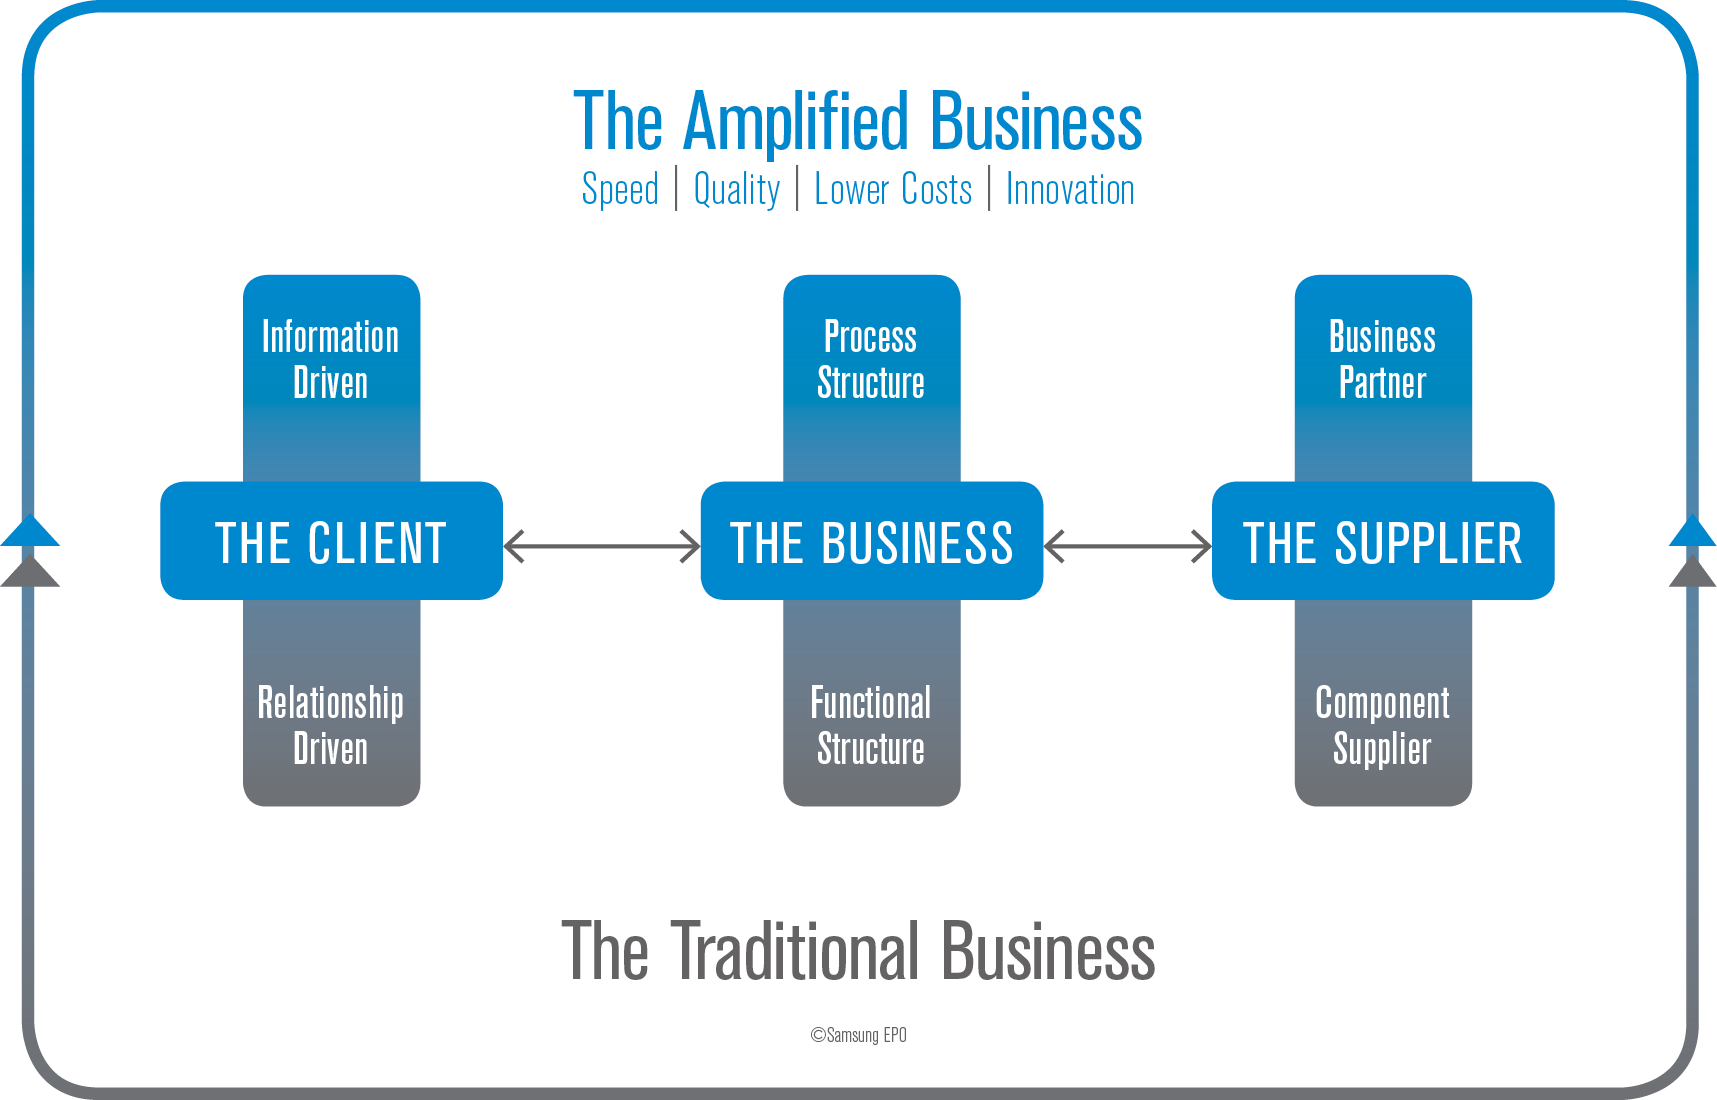 The Amplified Business